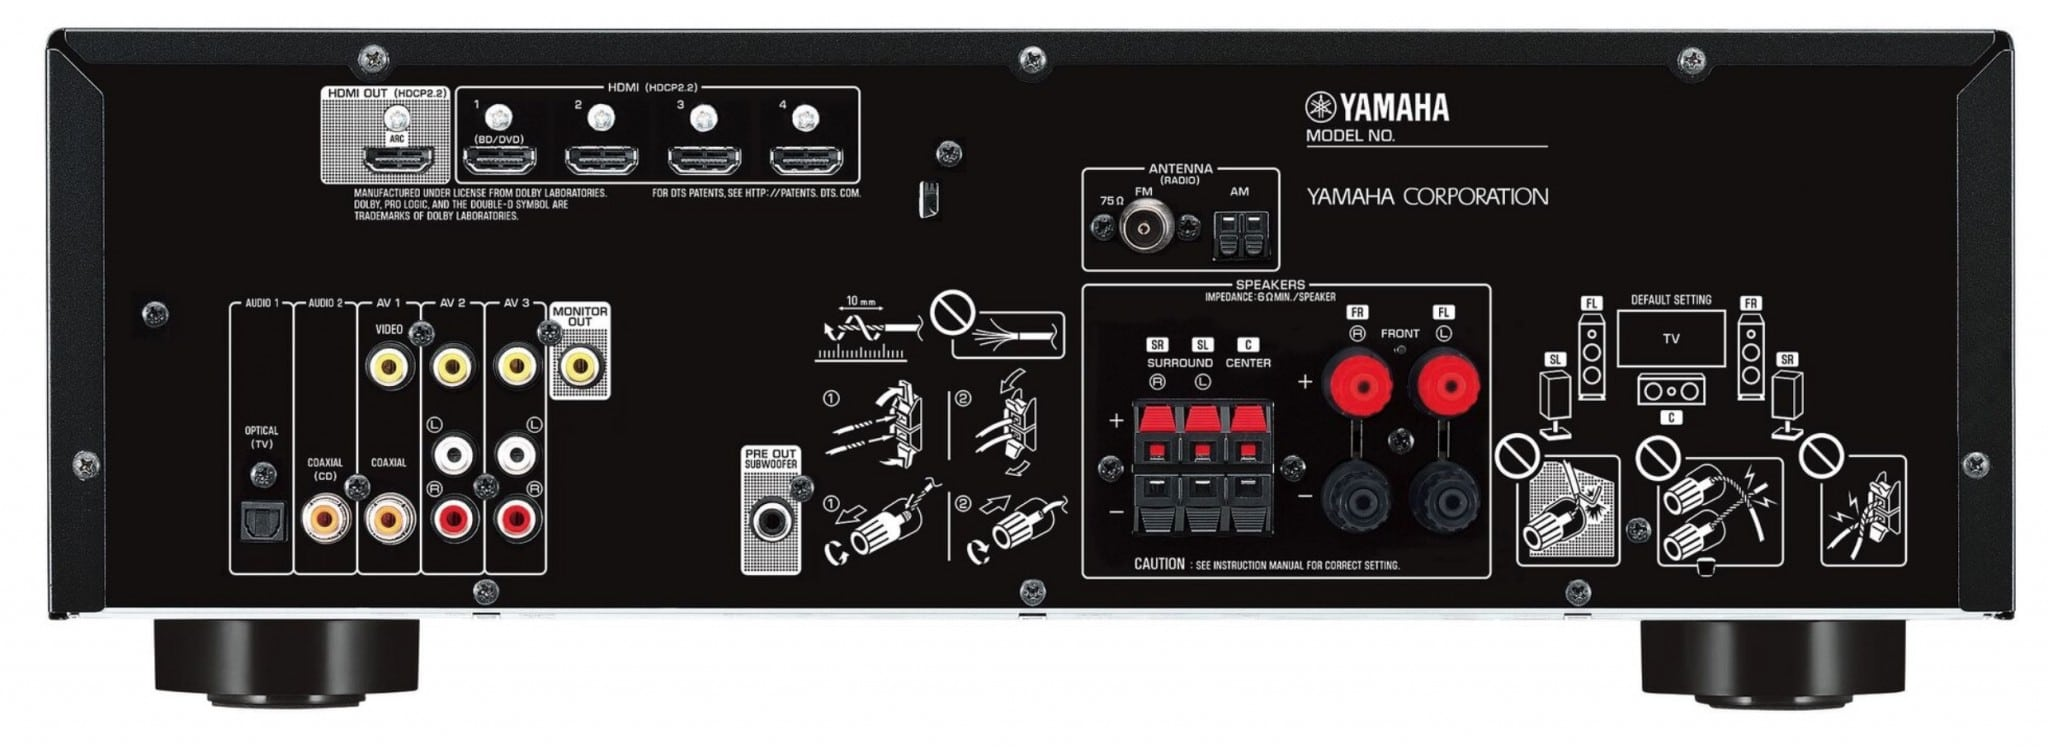 yamaha s entry level multi channel receivers the rx v383. Black Bedroom Furniture Sets. Home Design Ideas